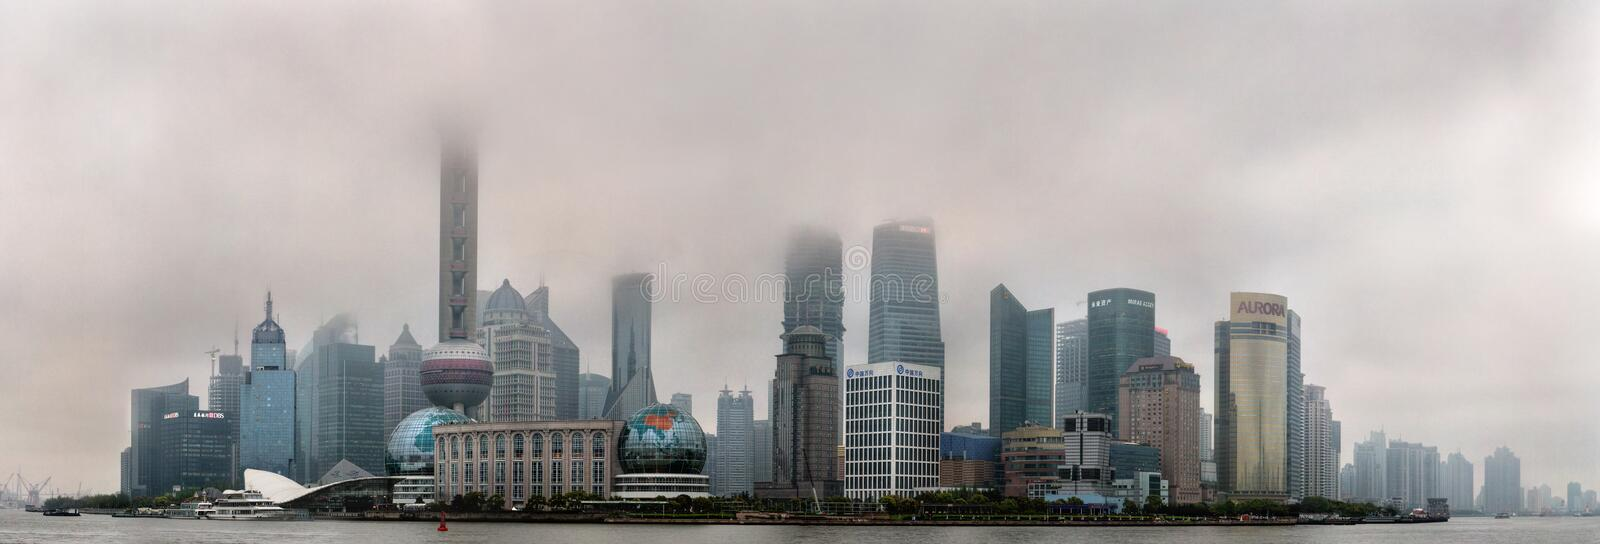 Air Pollution in Shanghai China Buildings are shrouded in smog. stock photo